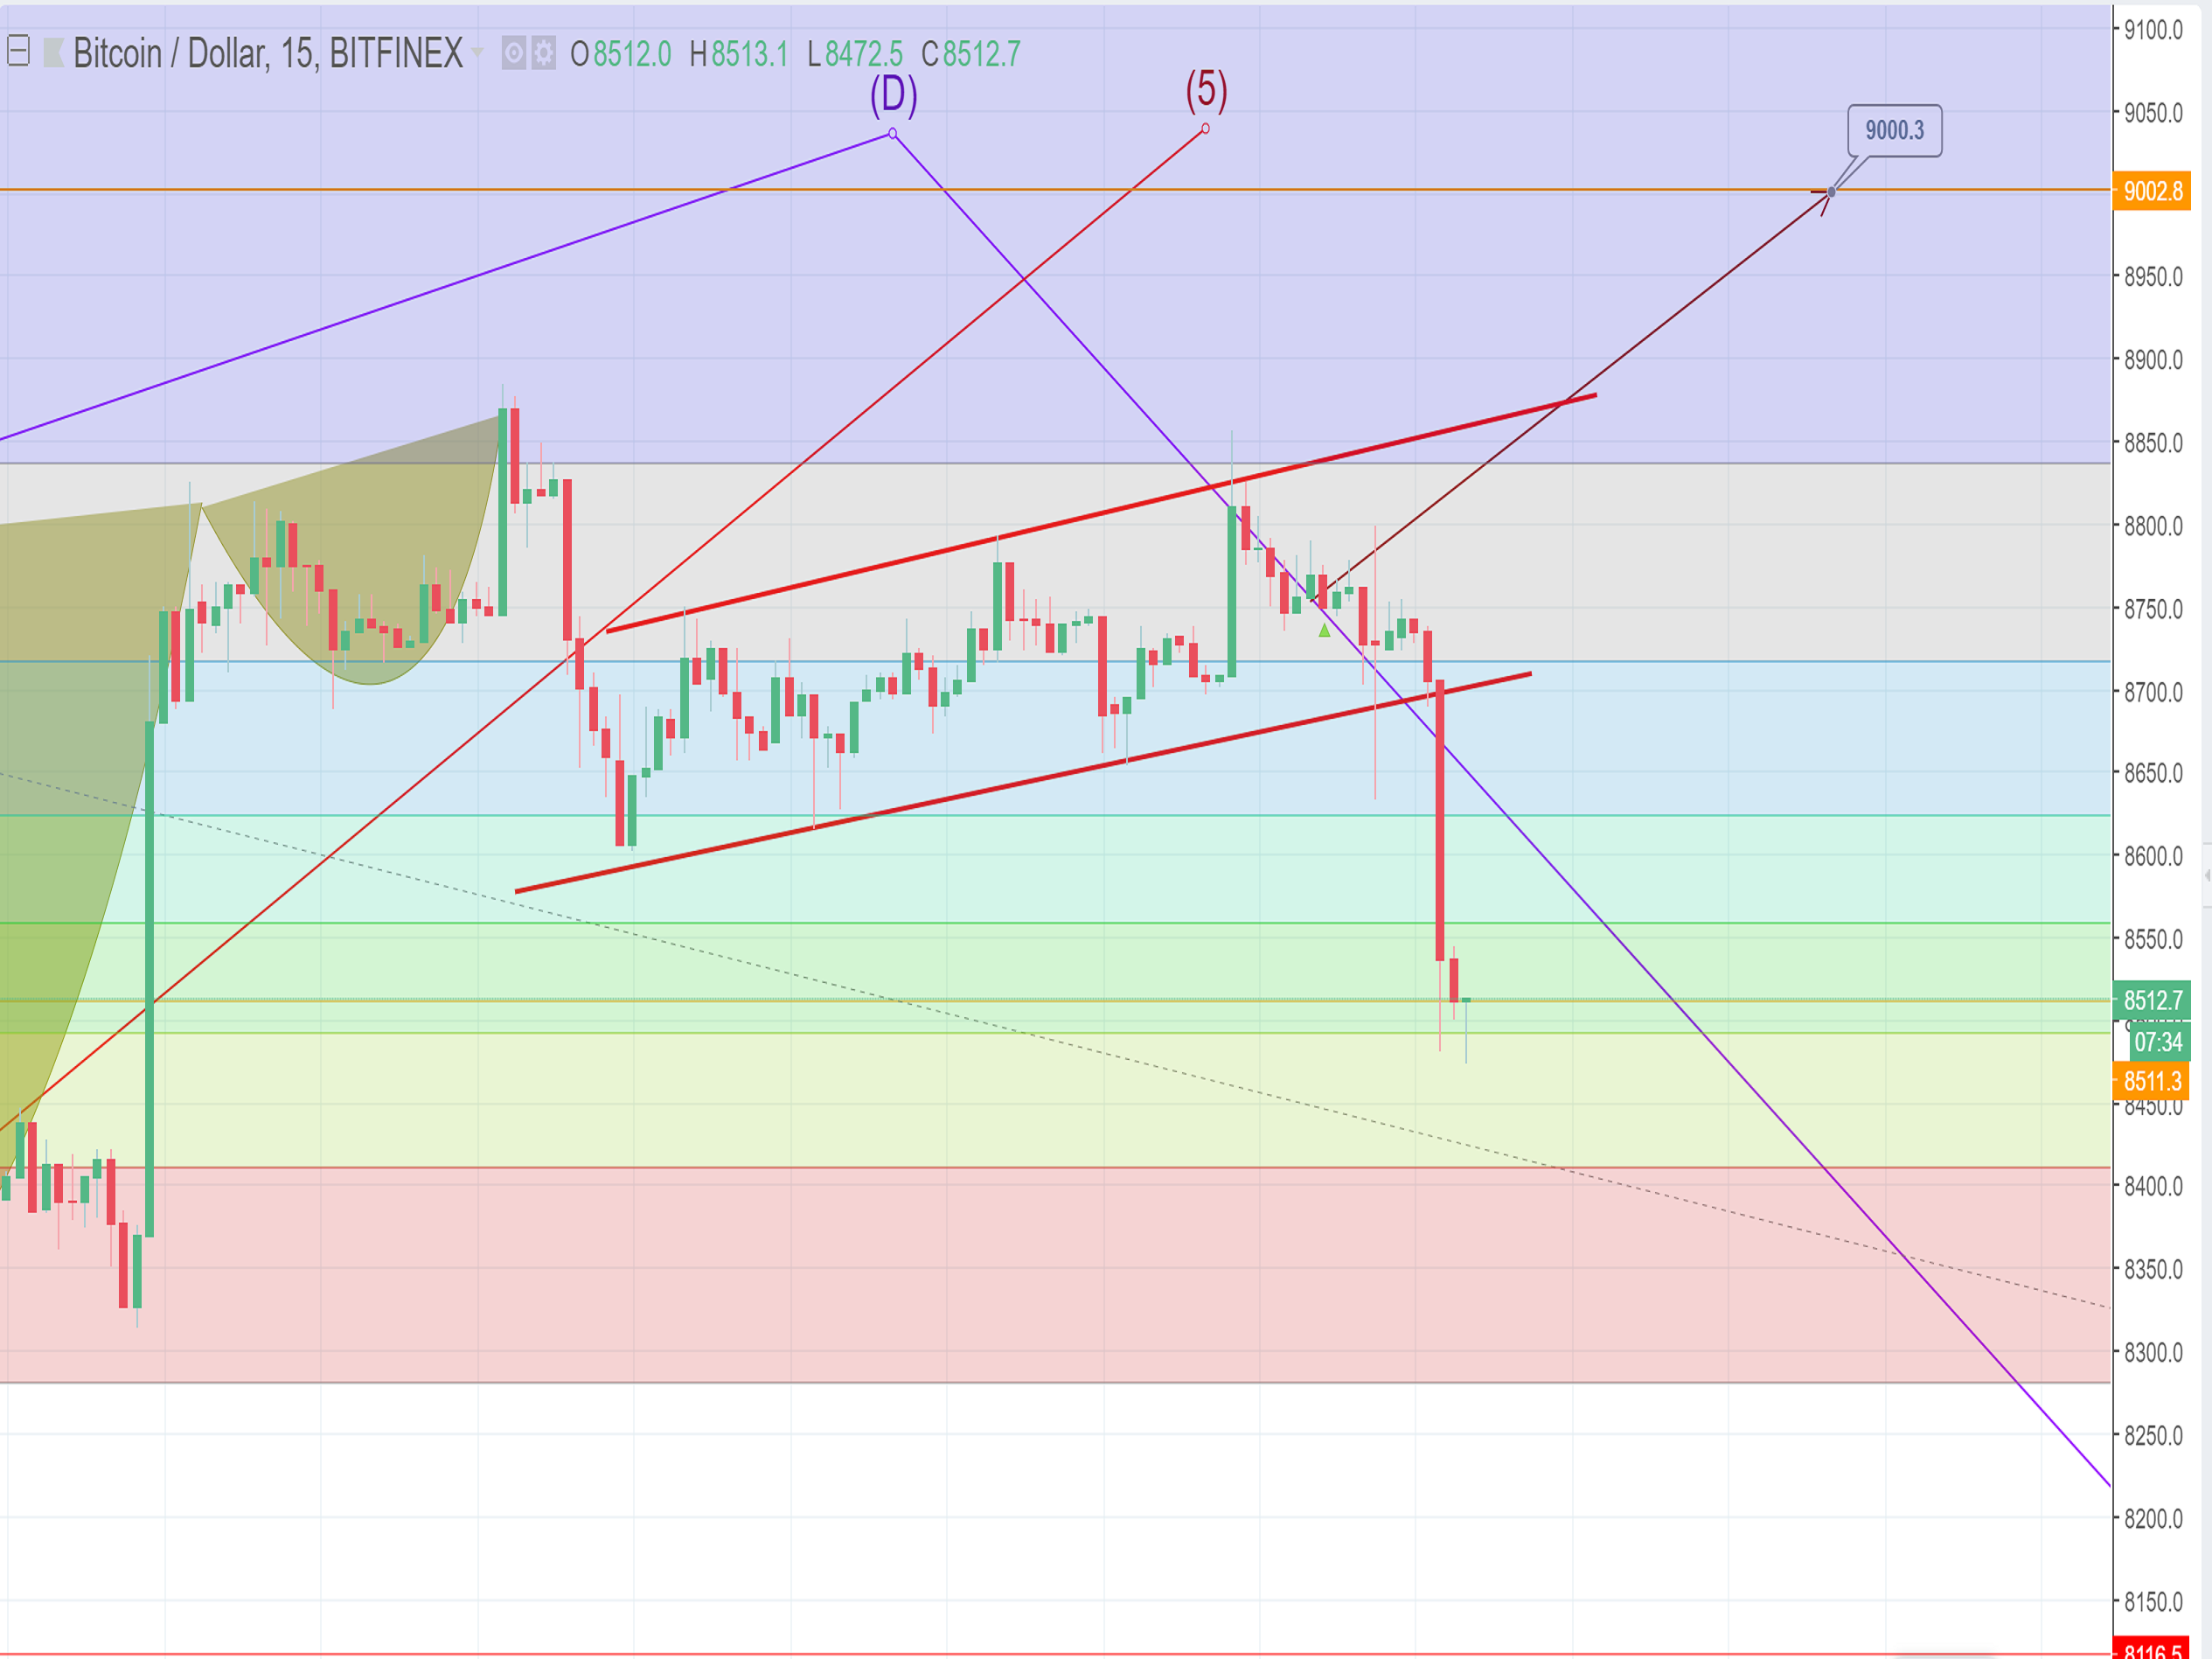 The bear is threatening the Bitcoin price, $9000 will be the next resistance level